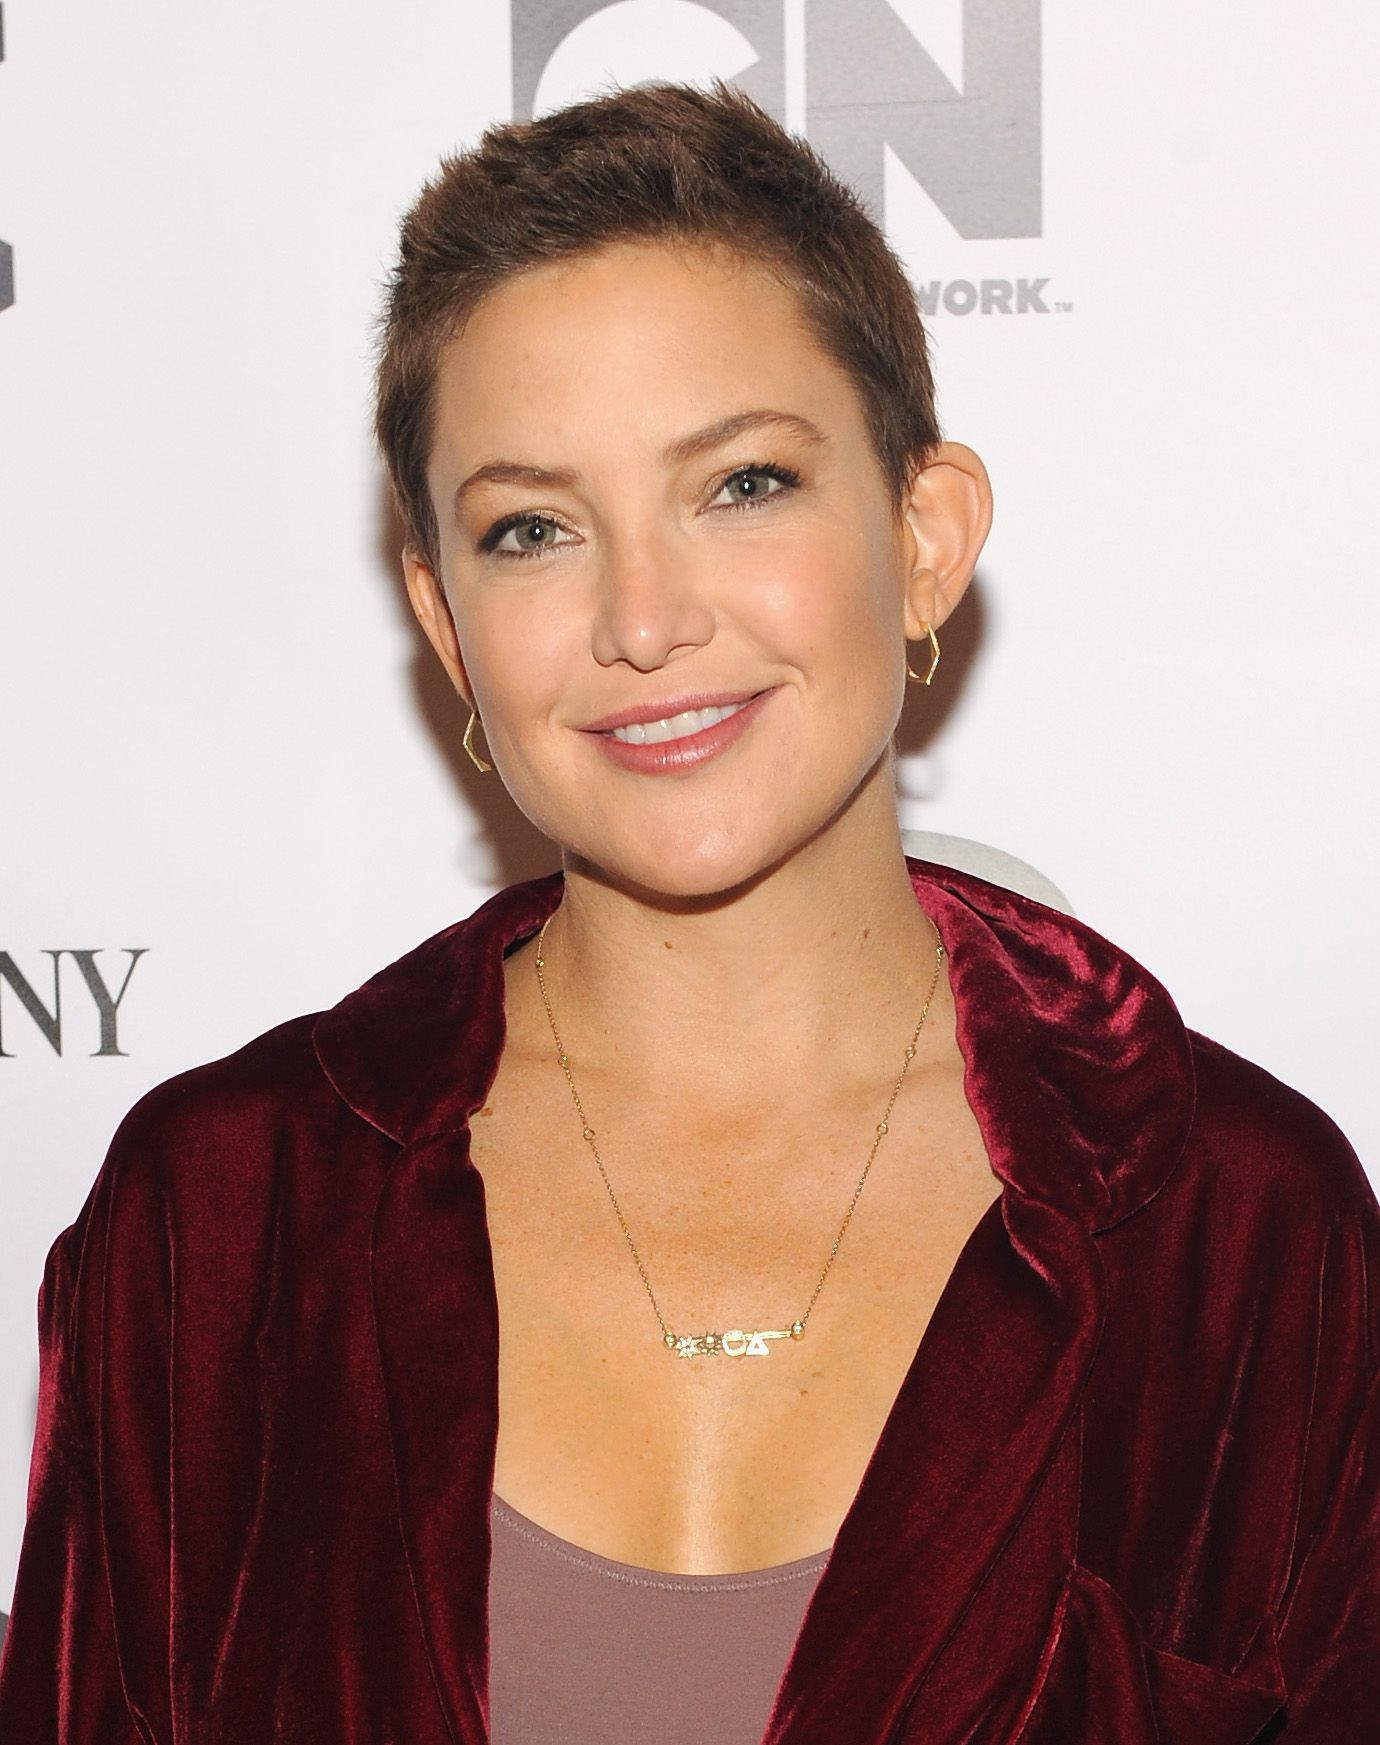 Kate Hudson during the Fast Company Innovation Festival at 92nd Street Y on October 26, 2017 in New York City | Photo: Getty Images